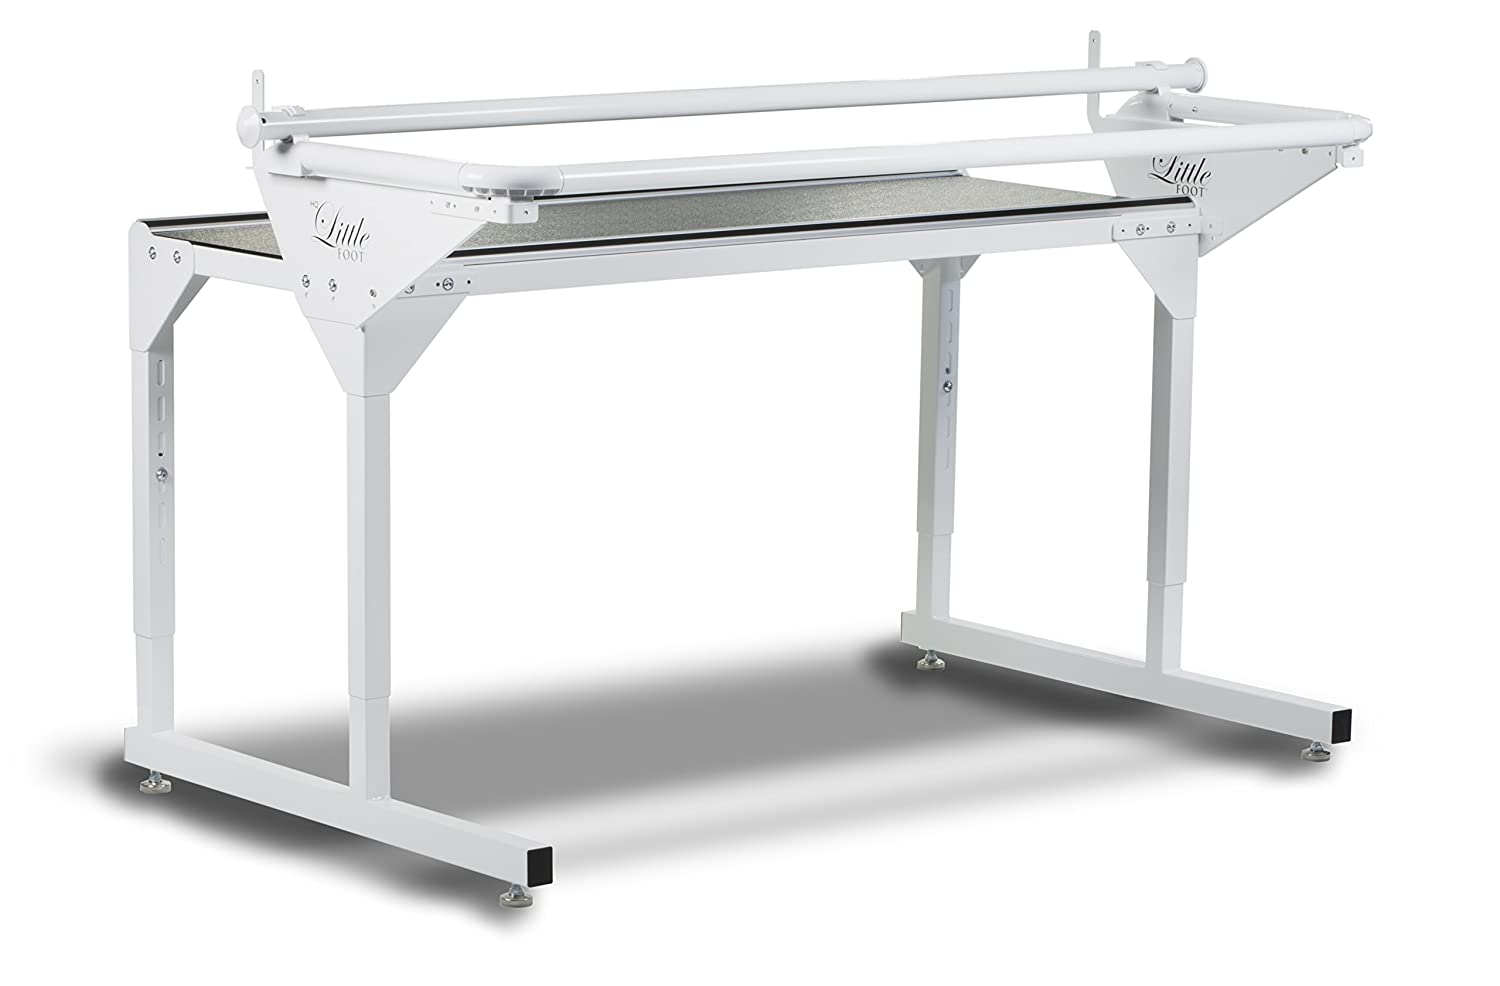 Amazon.com: Handi Quilter Little Foot Quilting Frame - 5 Foot